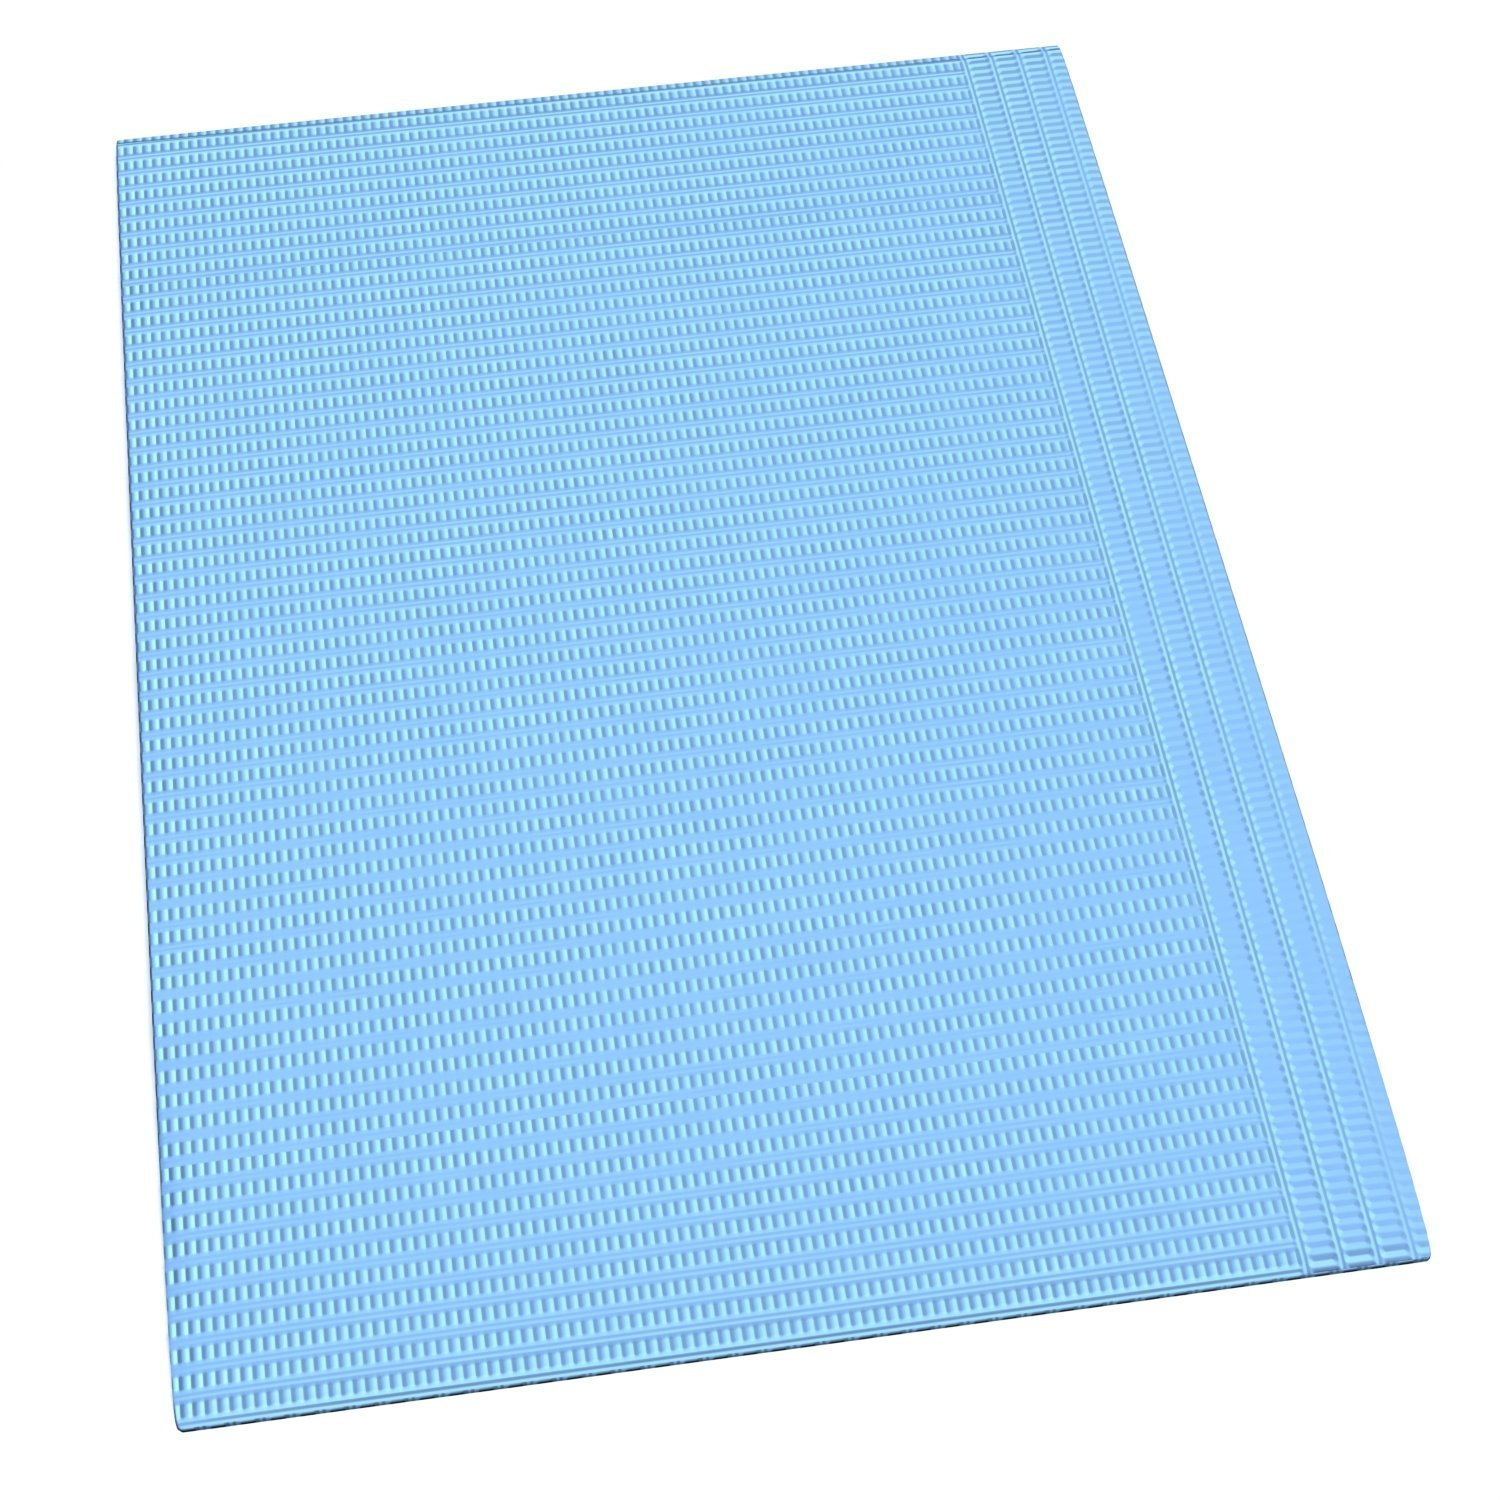 500 dental bibs 13''x 18'' (patient Towels), 3 ply (2-ply Paper, 1 Ply Poly) Premium Quality. BLUE